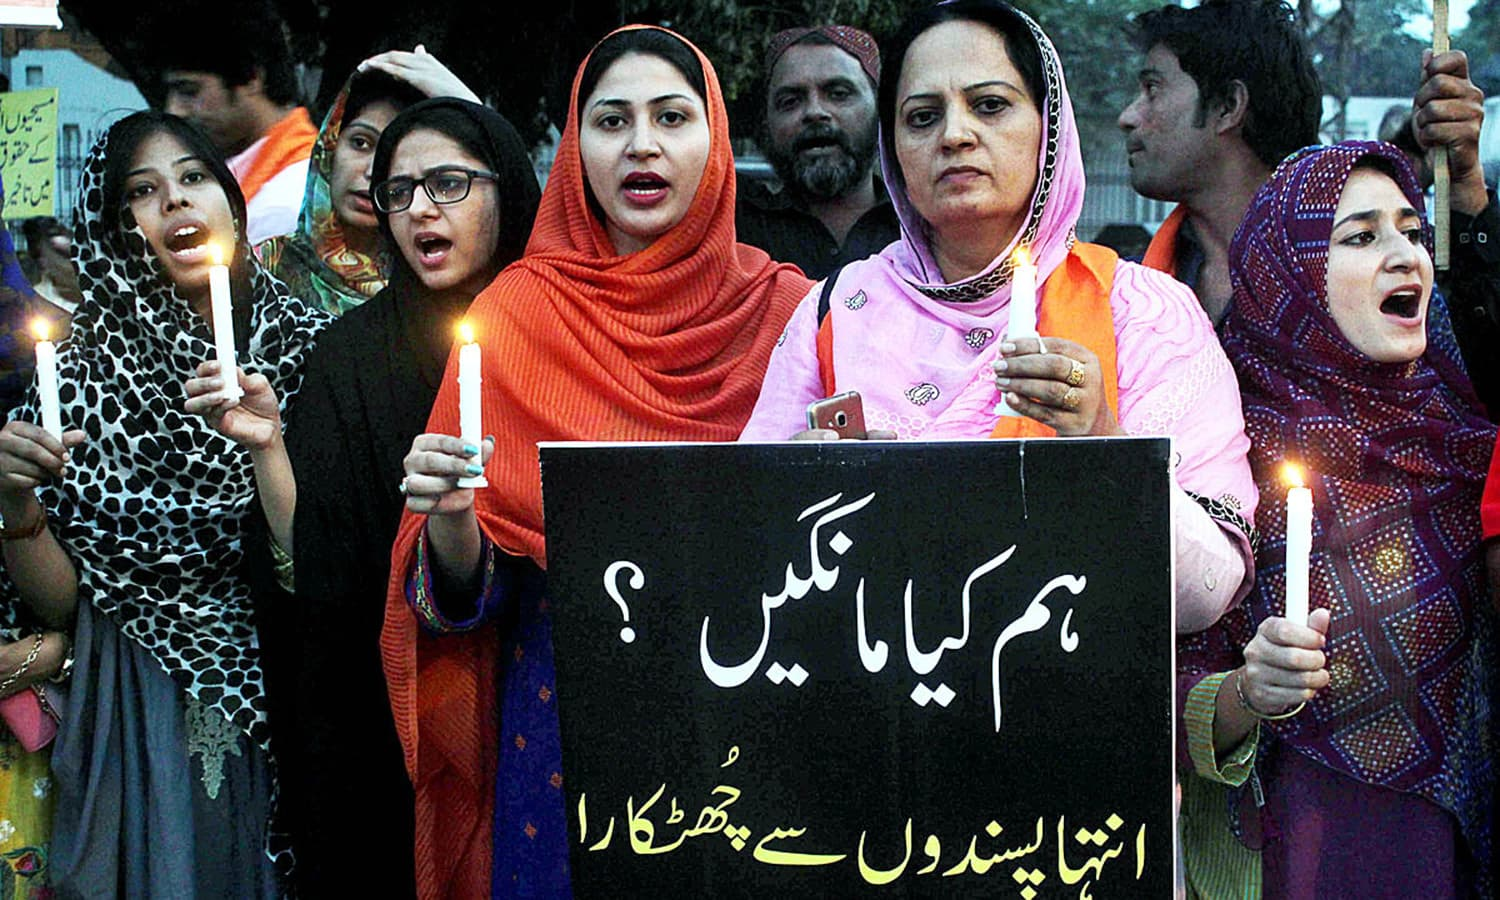 Members of Civil Society lit candles at Lahore's Faisal Chowk to pay tribute to the victims.— APP